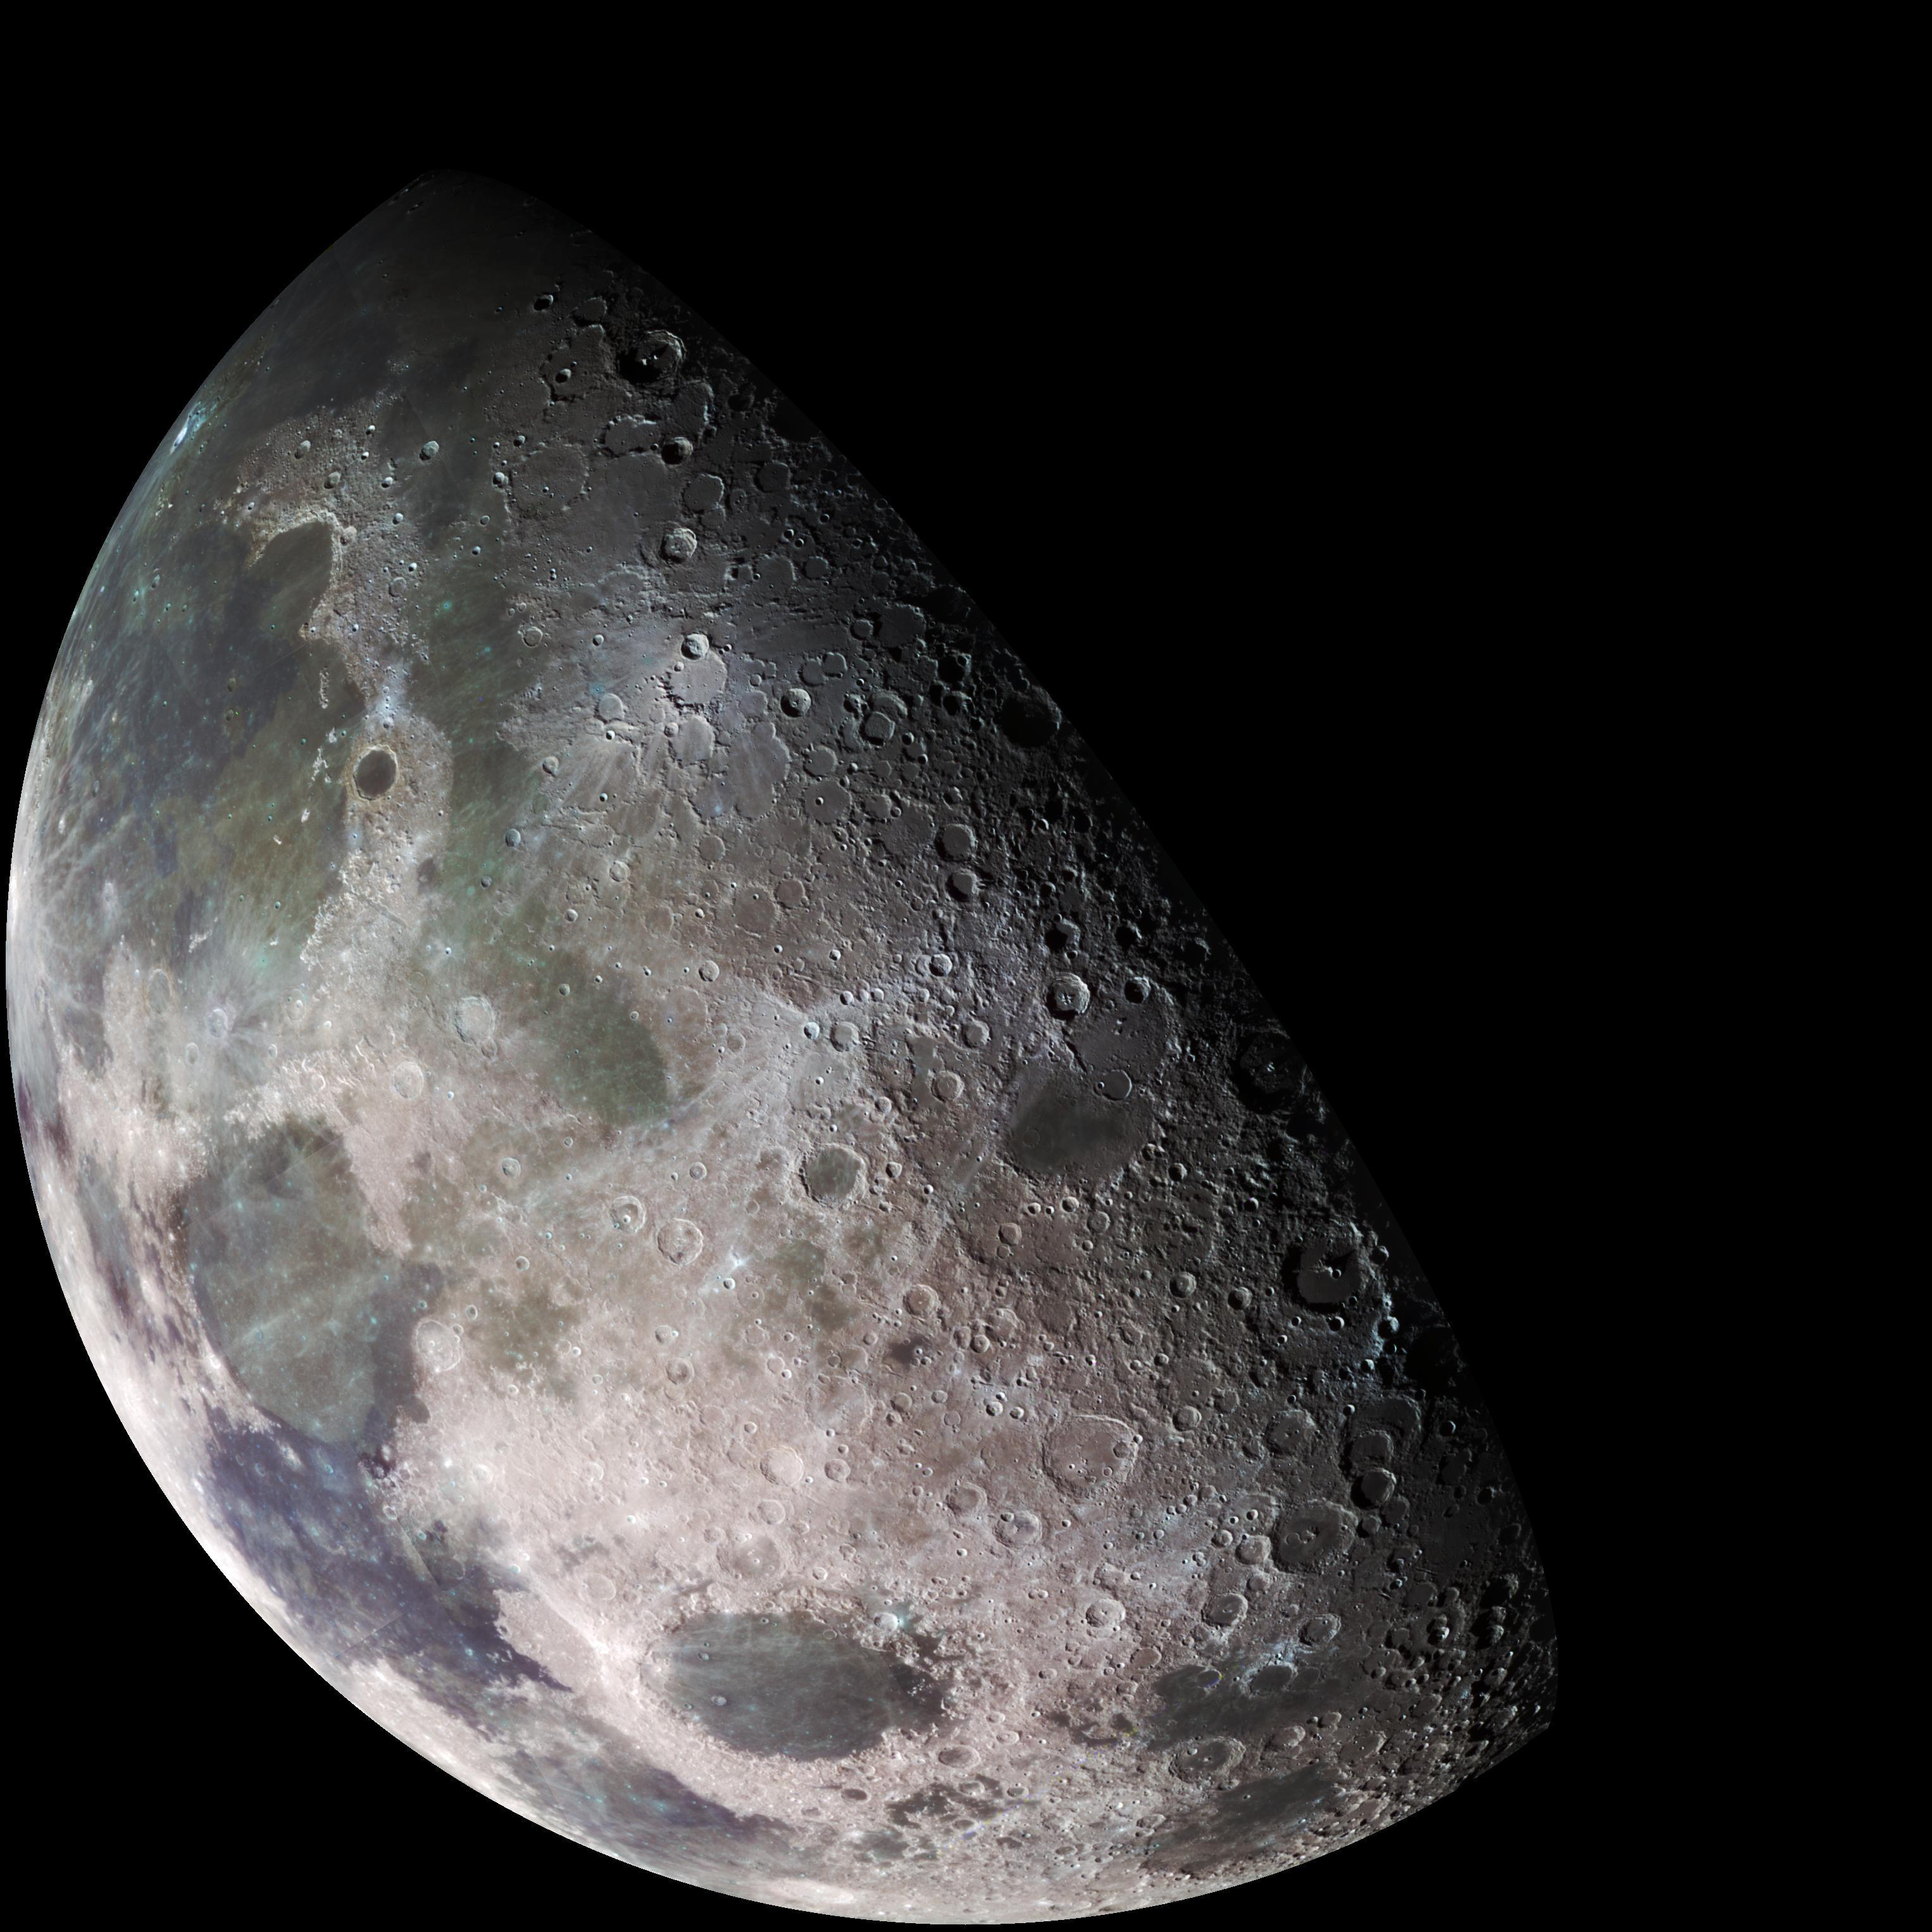 Image of the Moon captured by NASA's Galileo spacecraft on a flyby en-route to Jupiter in 1992.  Image Credit: NASA/JPL/USGS.